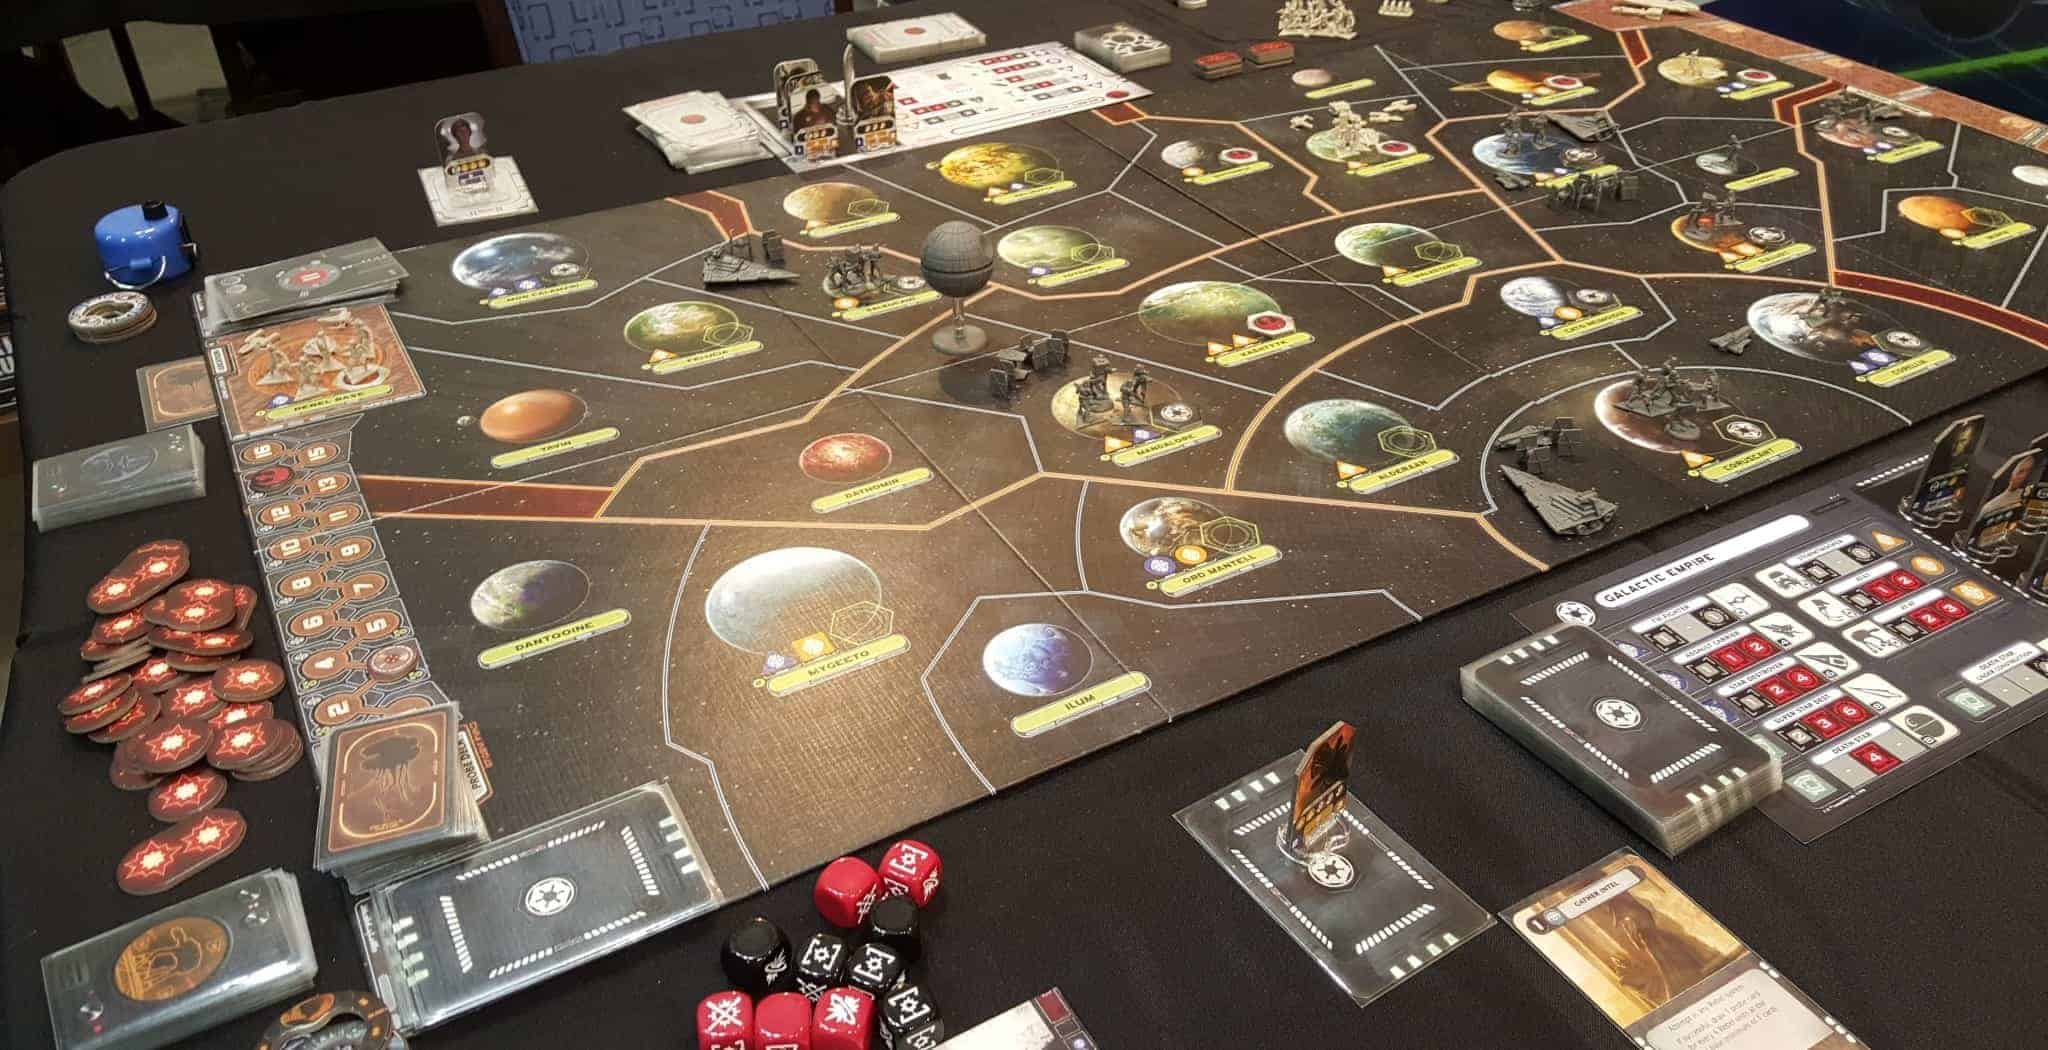 As one of the best 2 player strategy board games Star Wars: Rebellion is definitely a board game to consider.